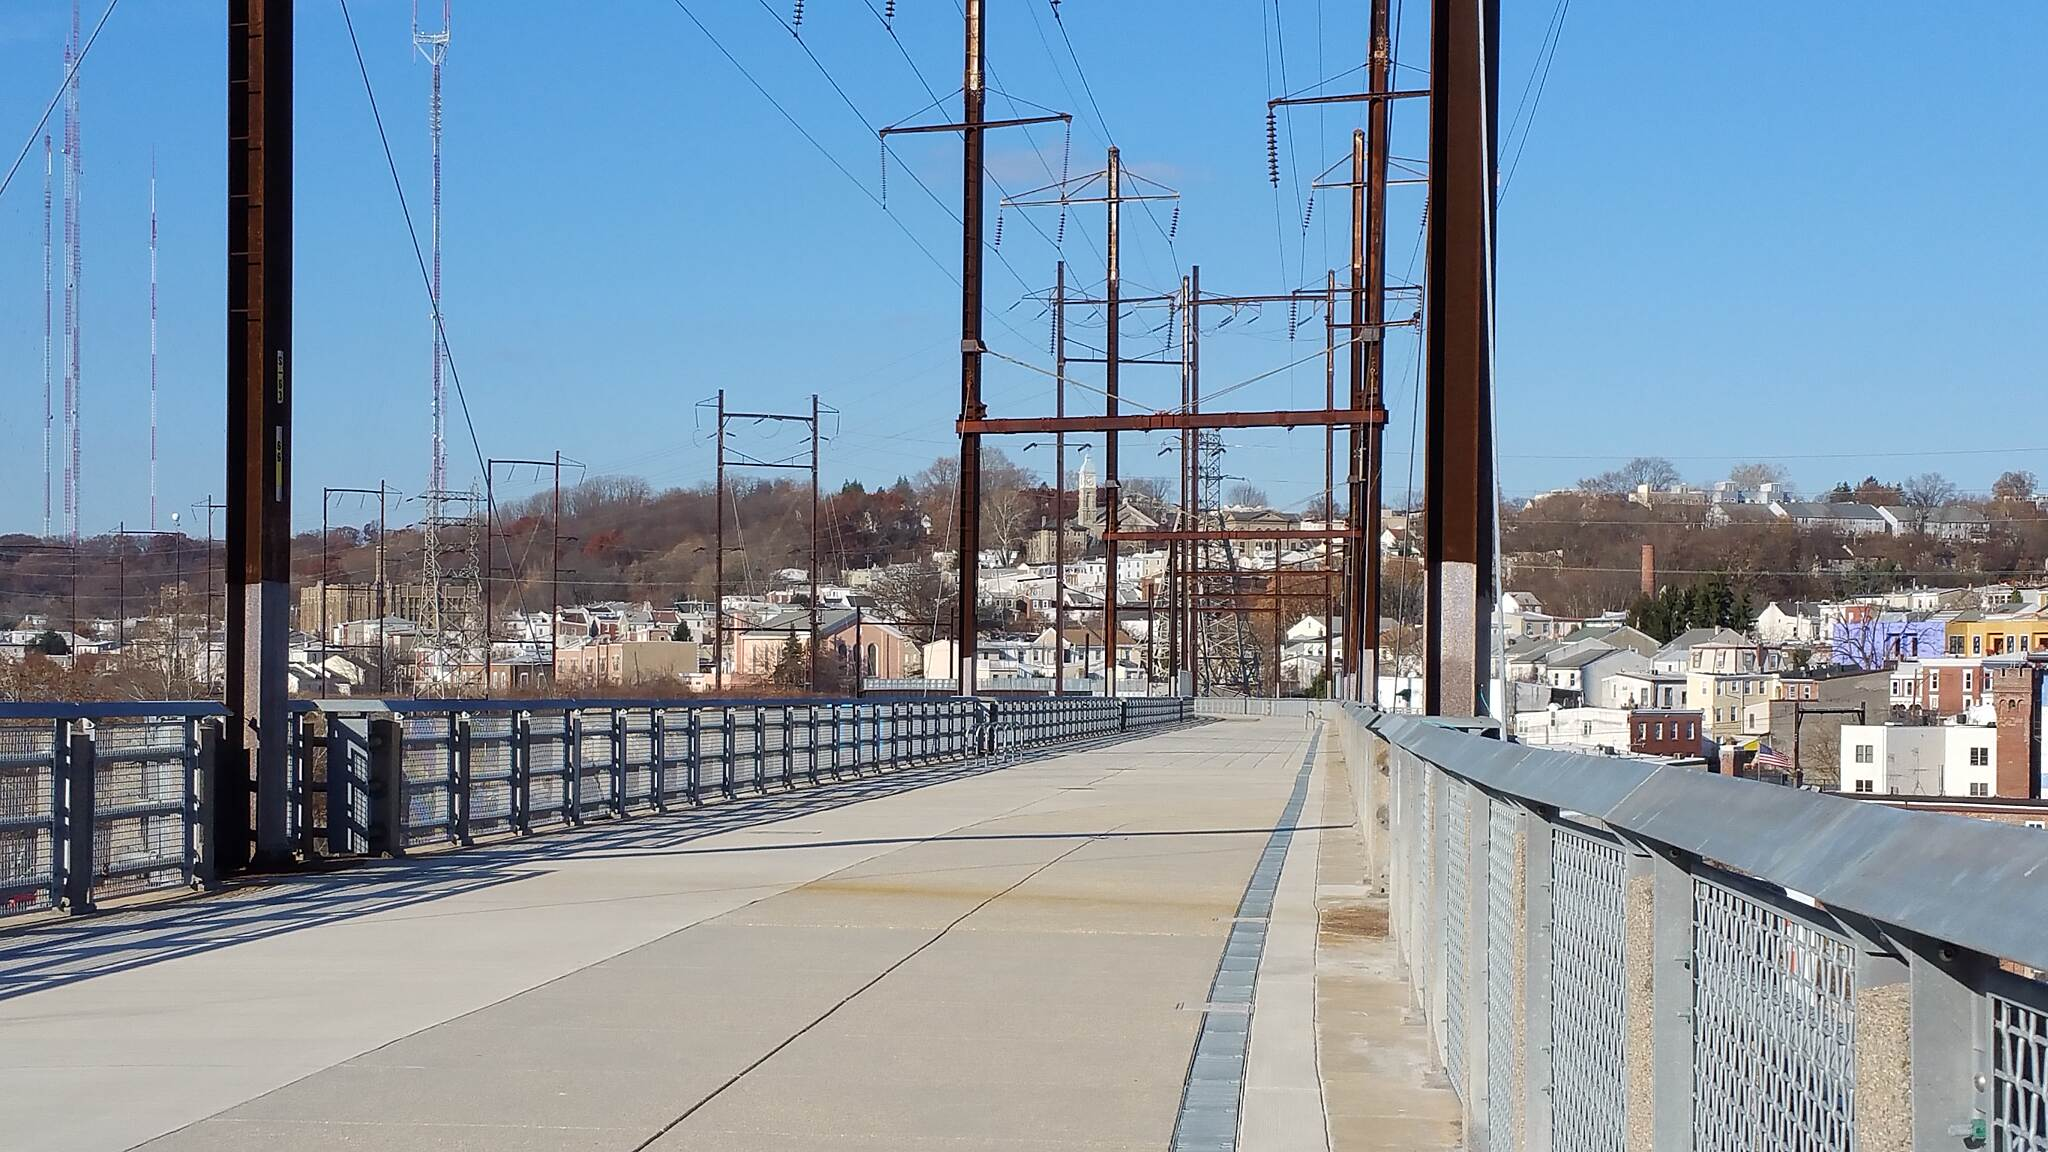 Manayunk Bridge Trail On Top Of The Trail  What a great day on this impressive bridge. Even though it is a little nippy l could not pass this opportunity to take some pictures.